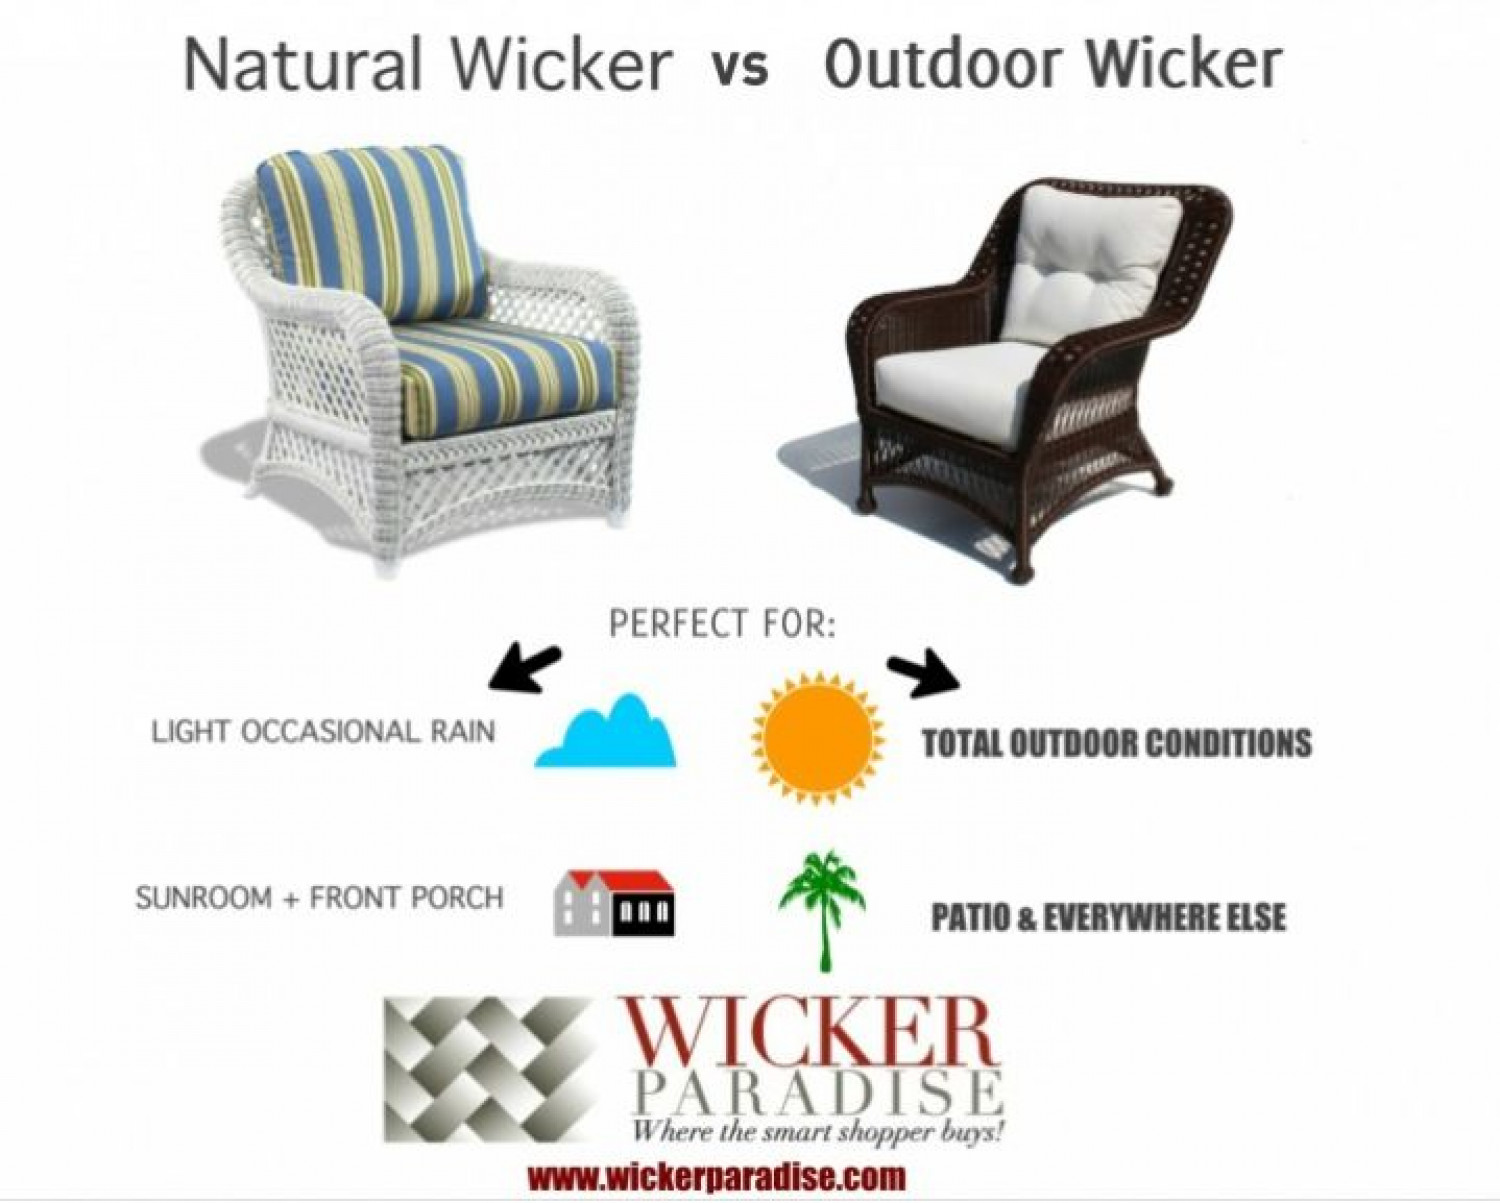 wicker furniture indoor vs outdoor use visual ly